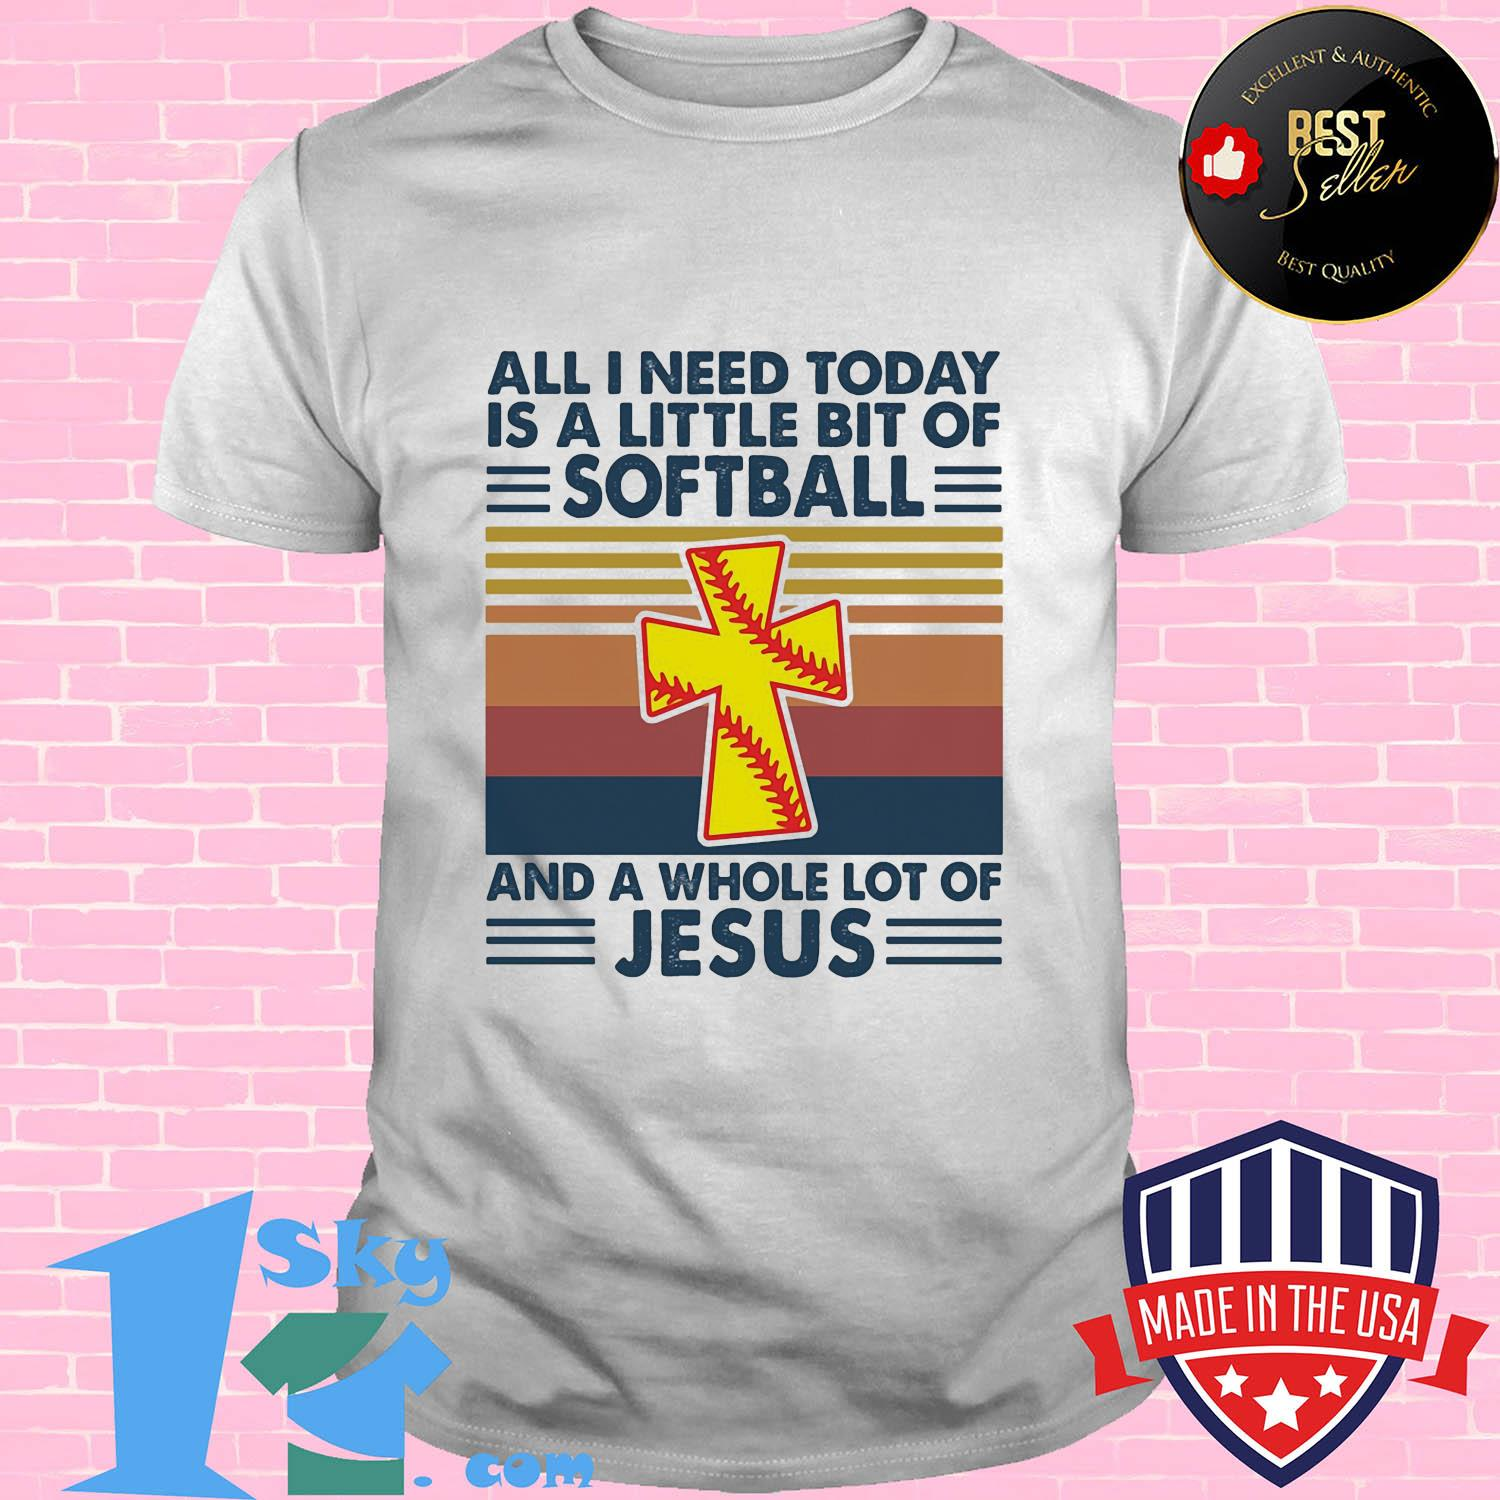 All I need today is a little bit of softball and a whole lot of Jesus vintage shirt